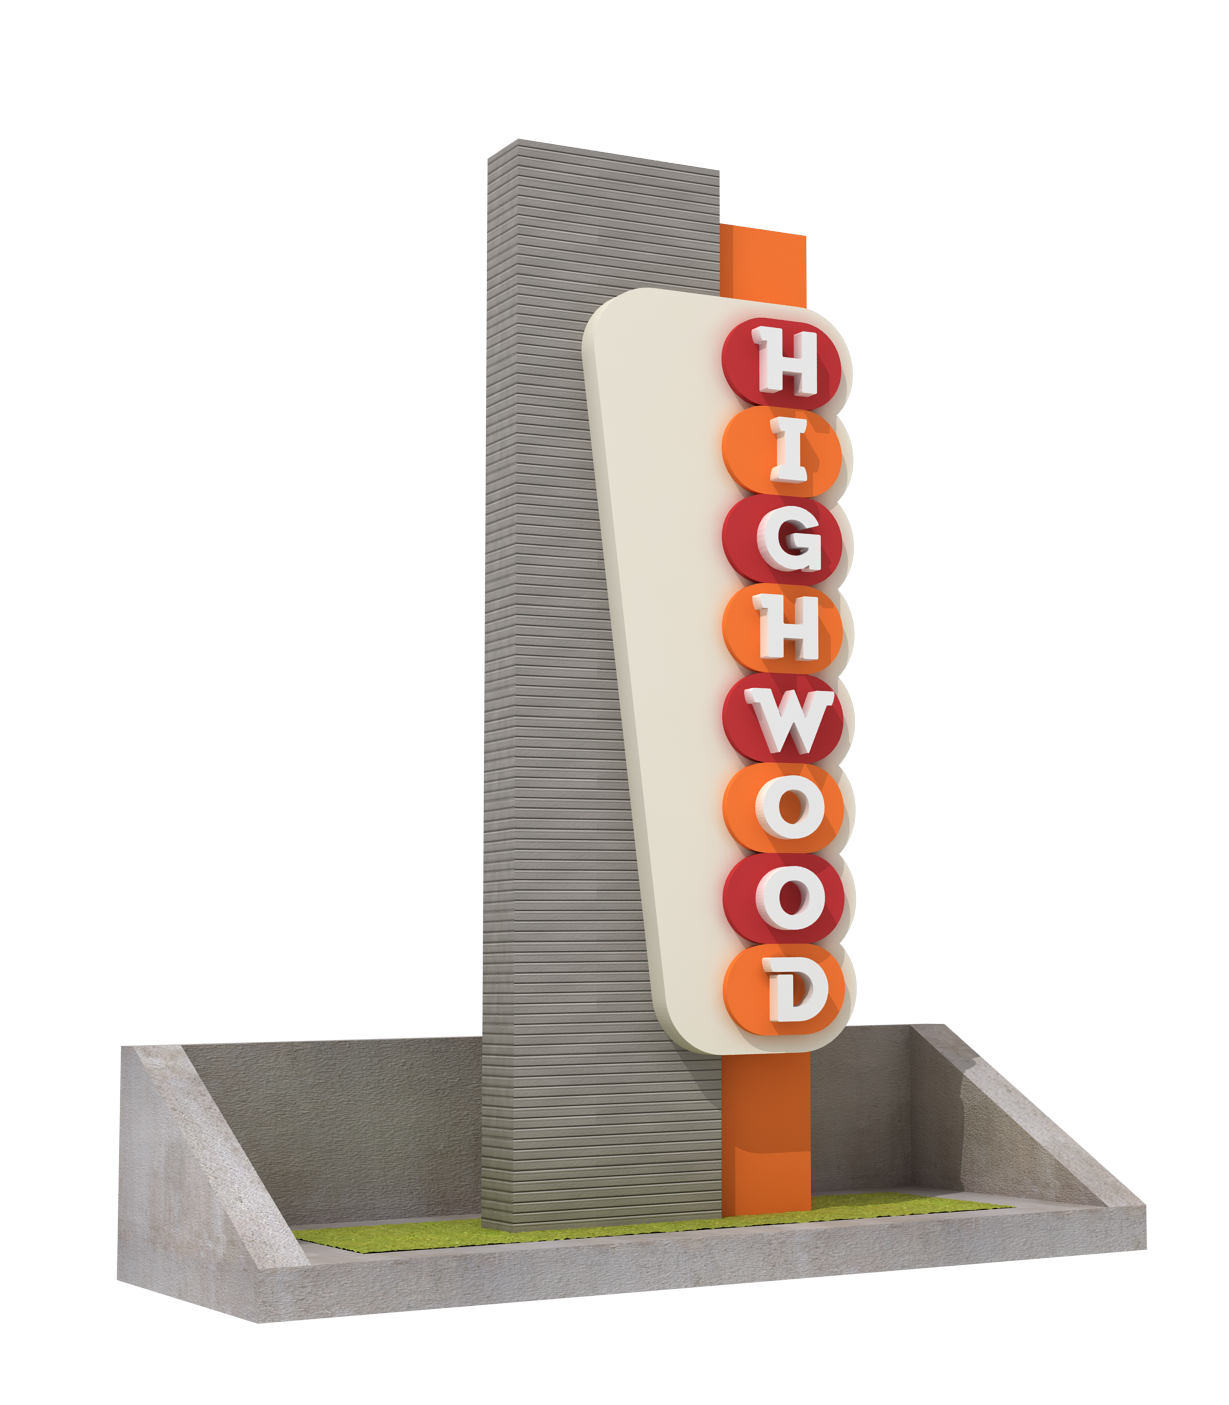 Entrance Welcome Sign to the City of Highwood